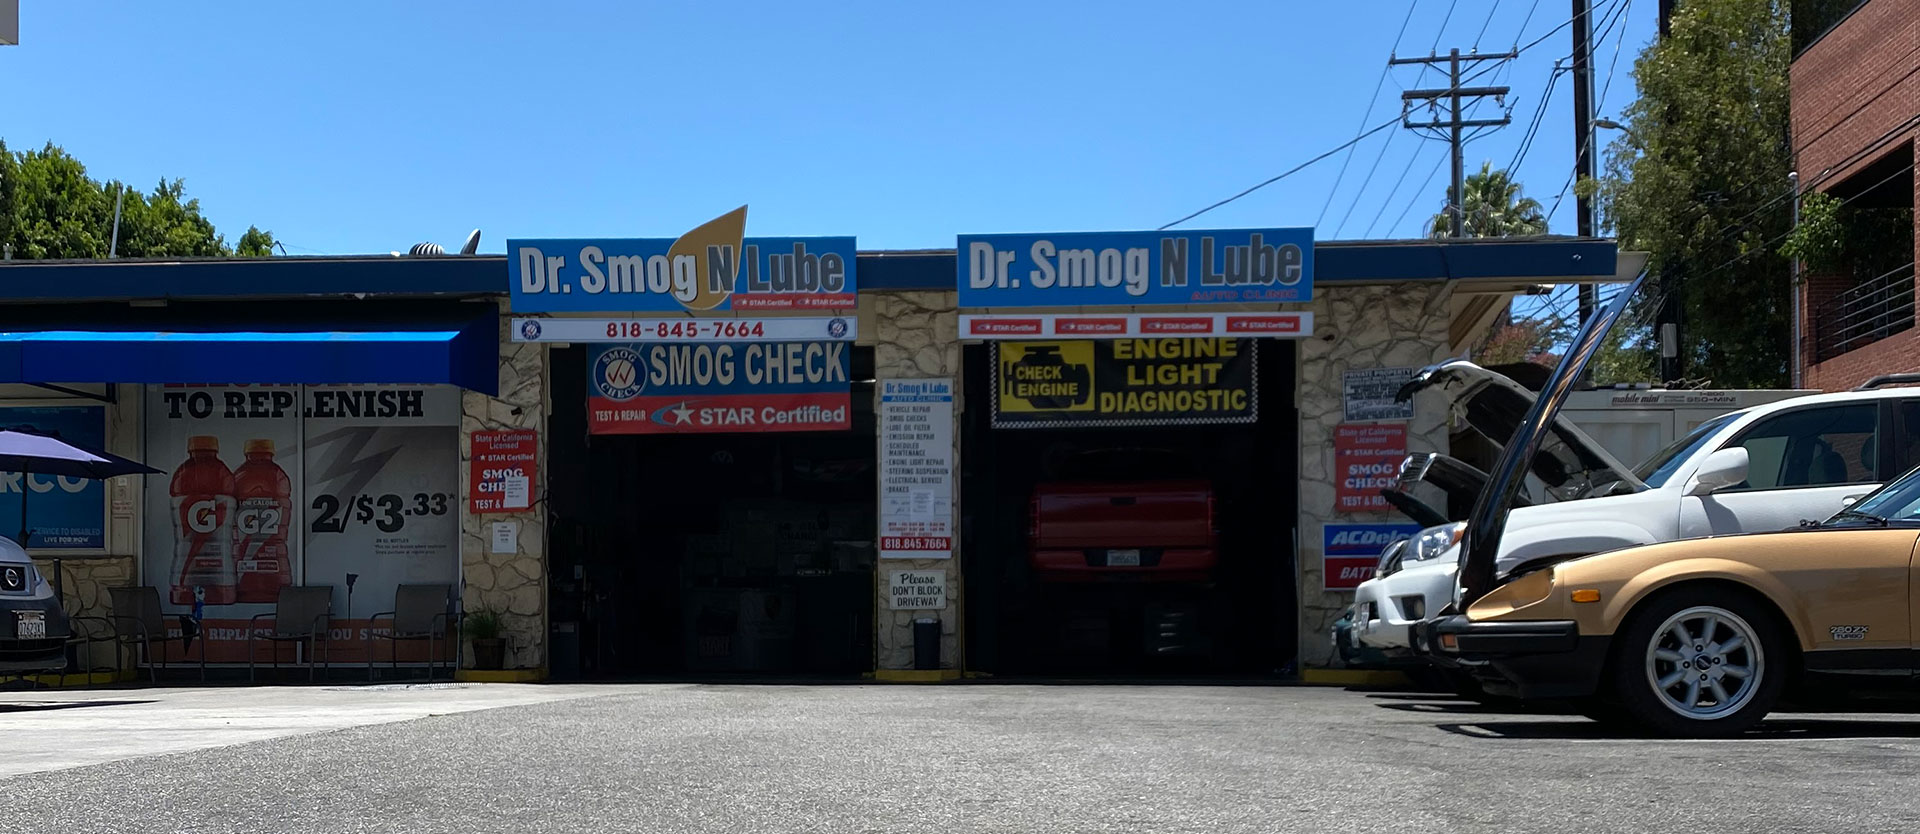 Dr. Smog N Lube Auto Clinic